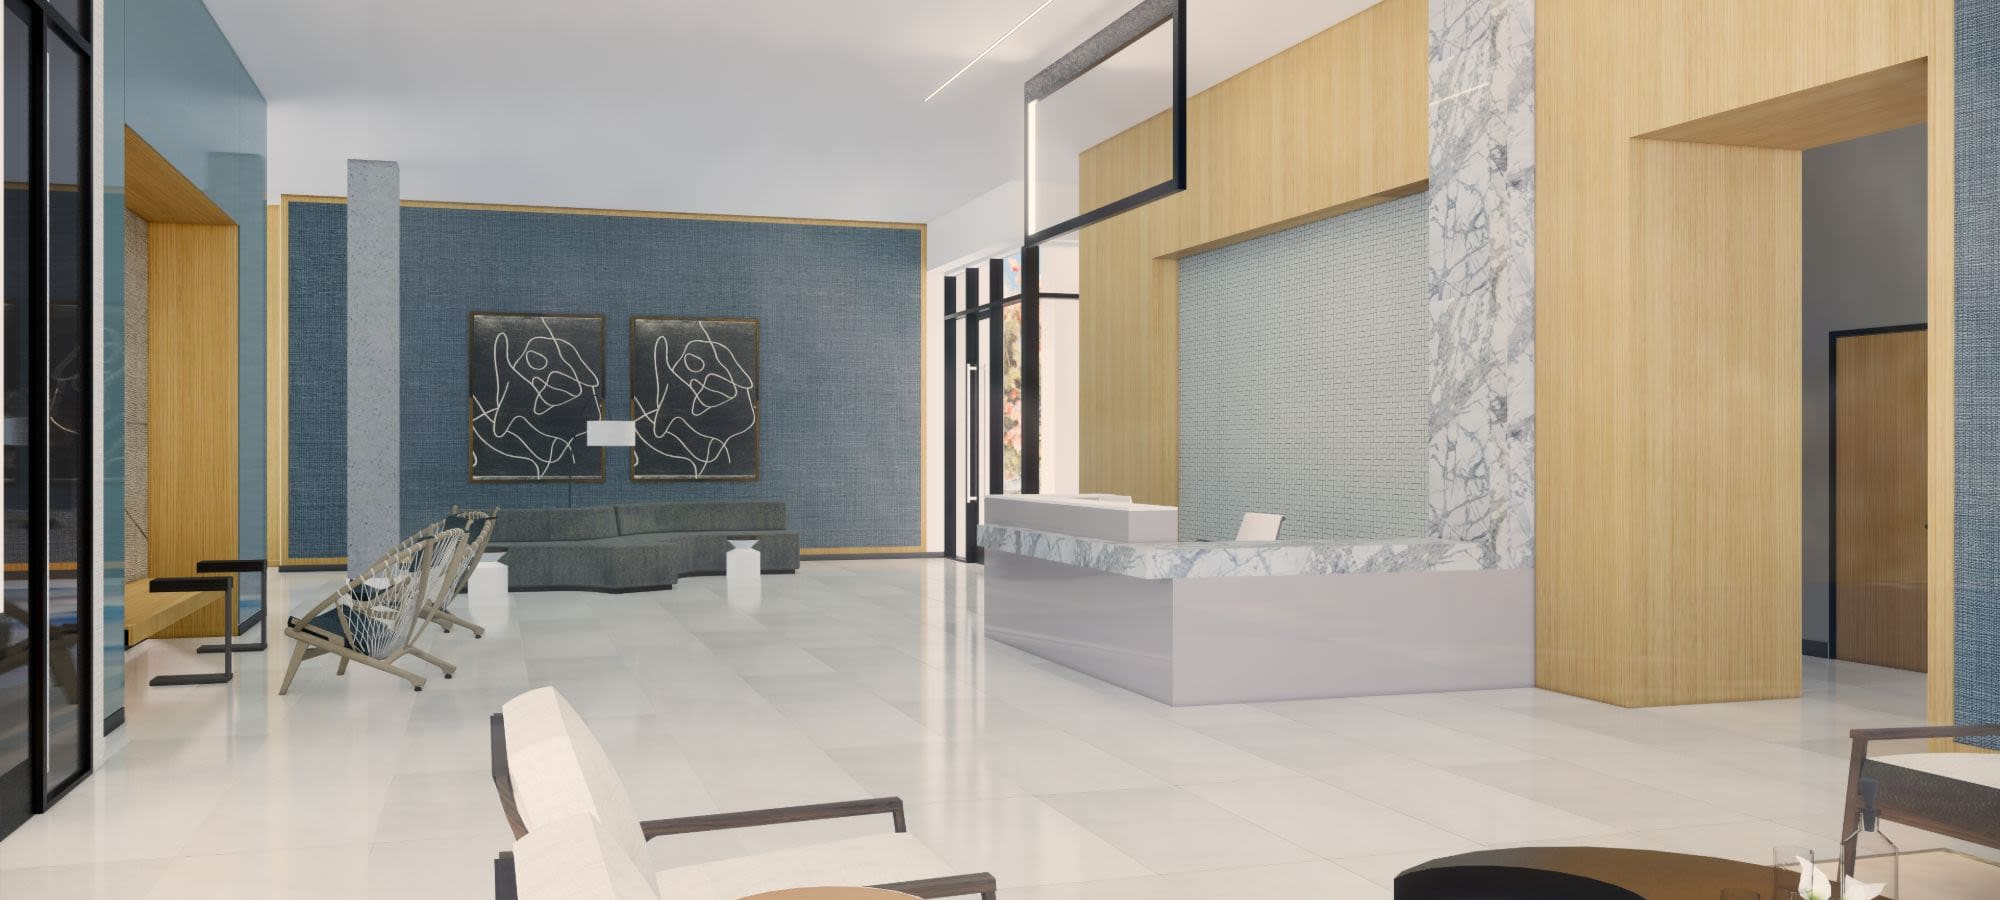 Rendering of lobby lounge area at The Piedmont in Tempe, Arizona